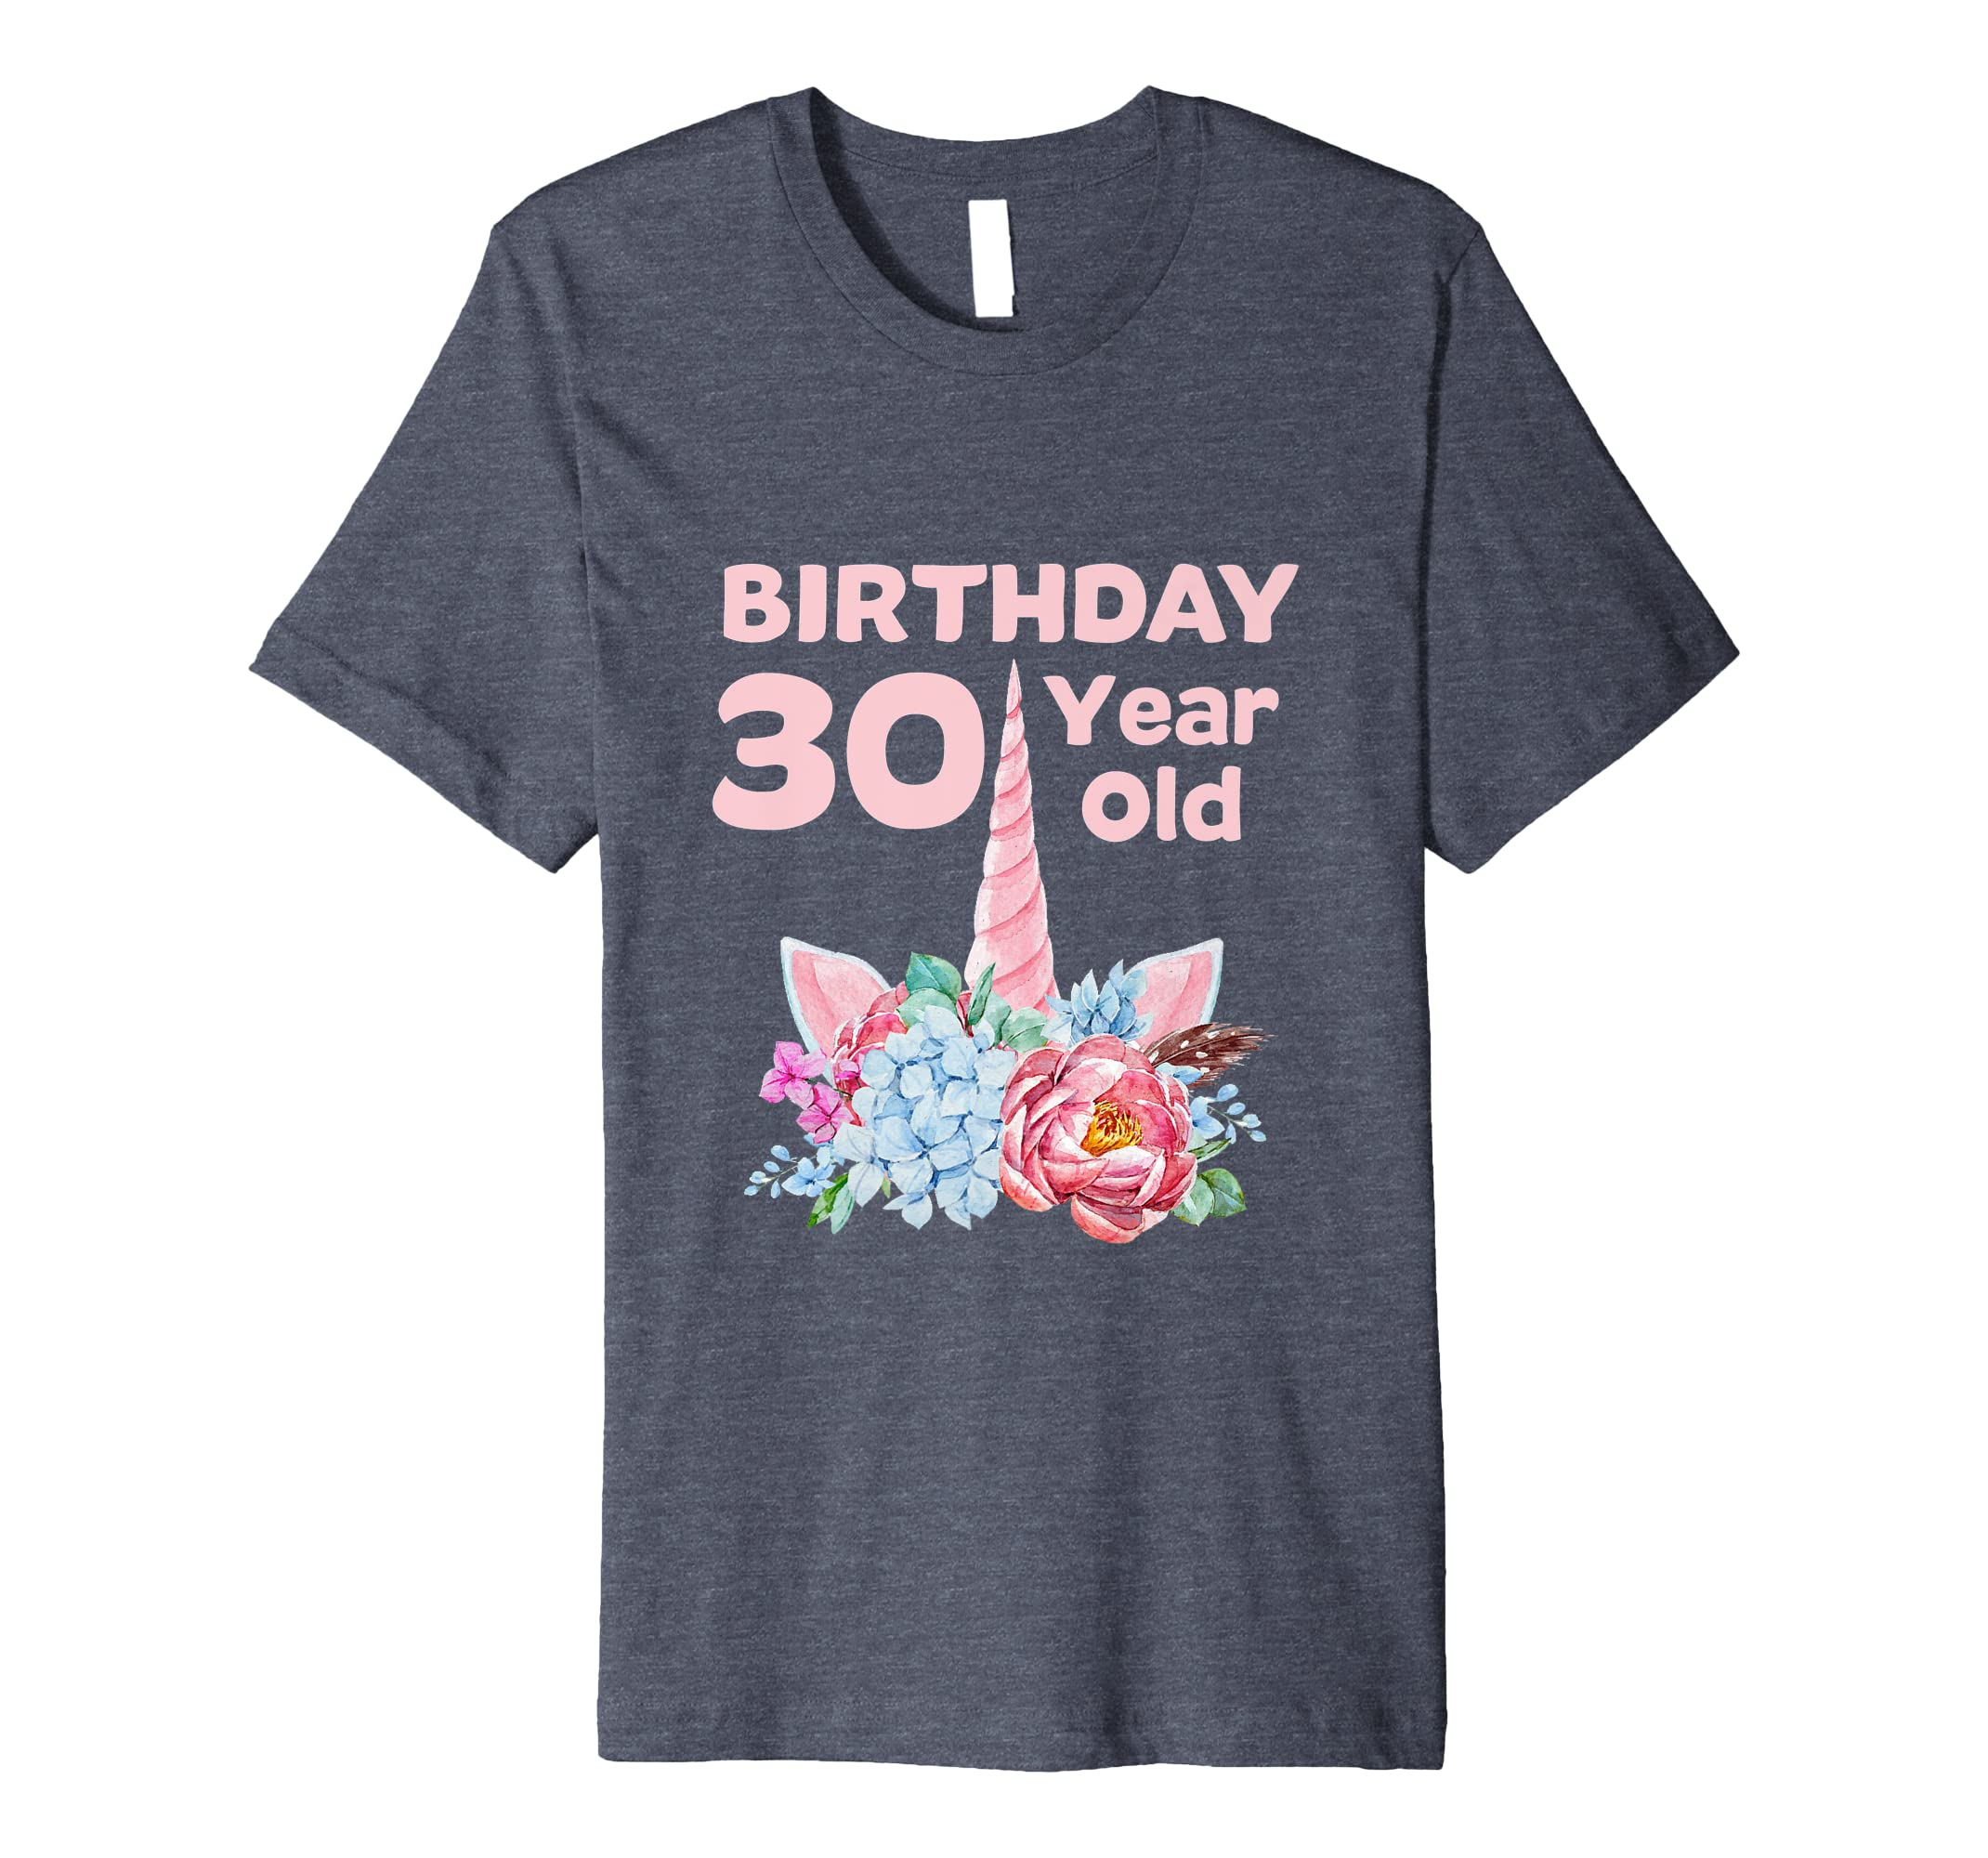 Amazon 30th Birthday Tshirt Unicorn Women Gifts 30 Year Old Sister Clothing